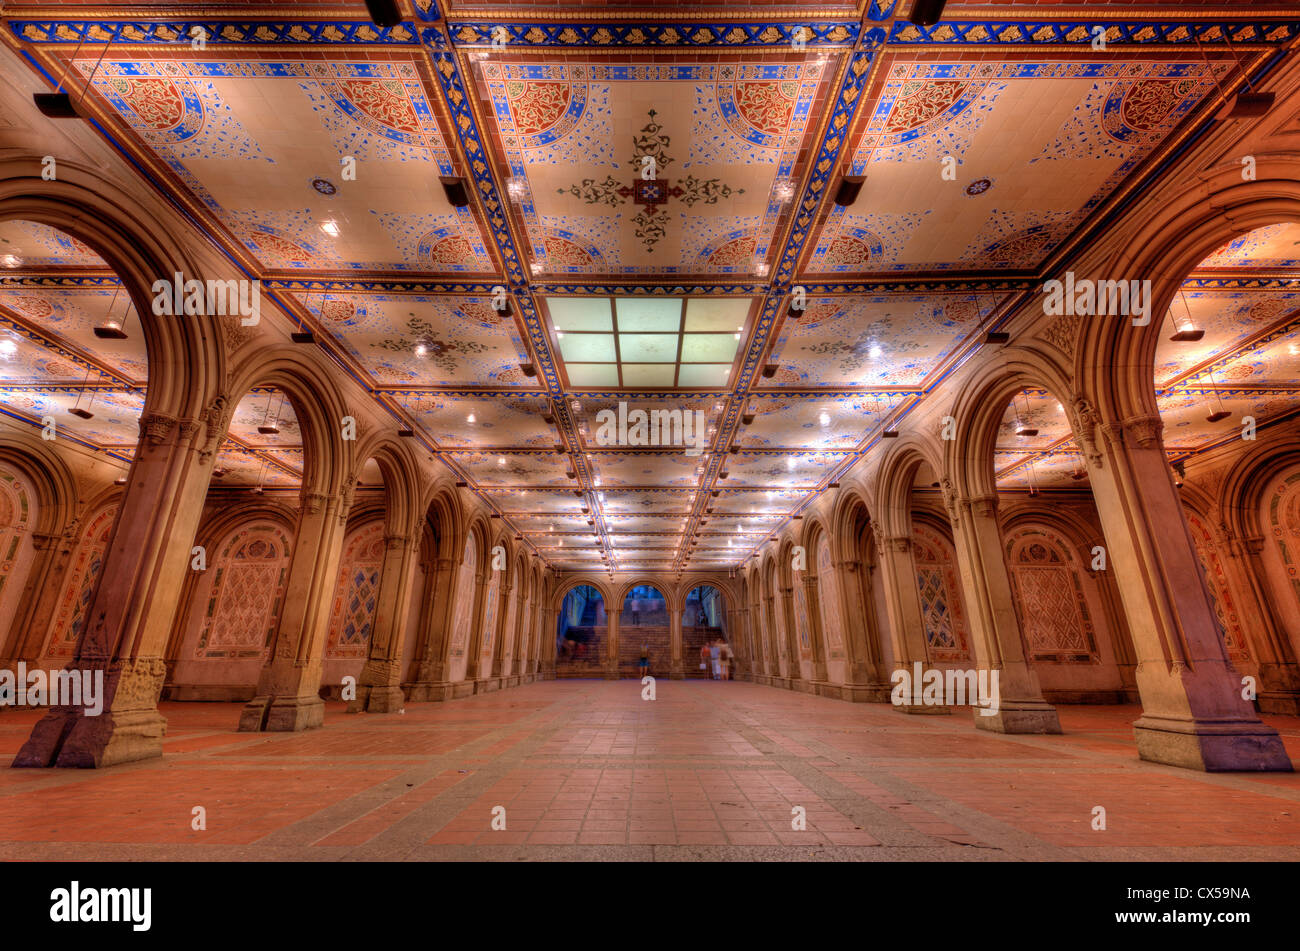 Ornate underpass of Bethesda Terrace in New York City's Central Park. - Stock Image